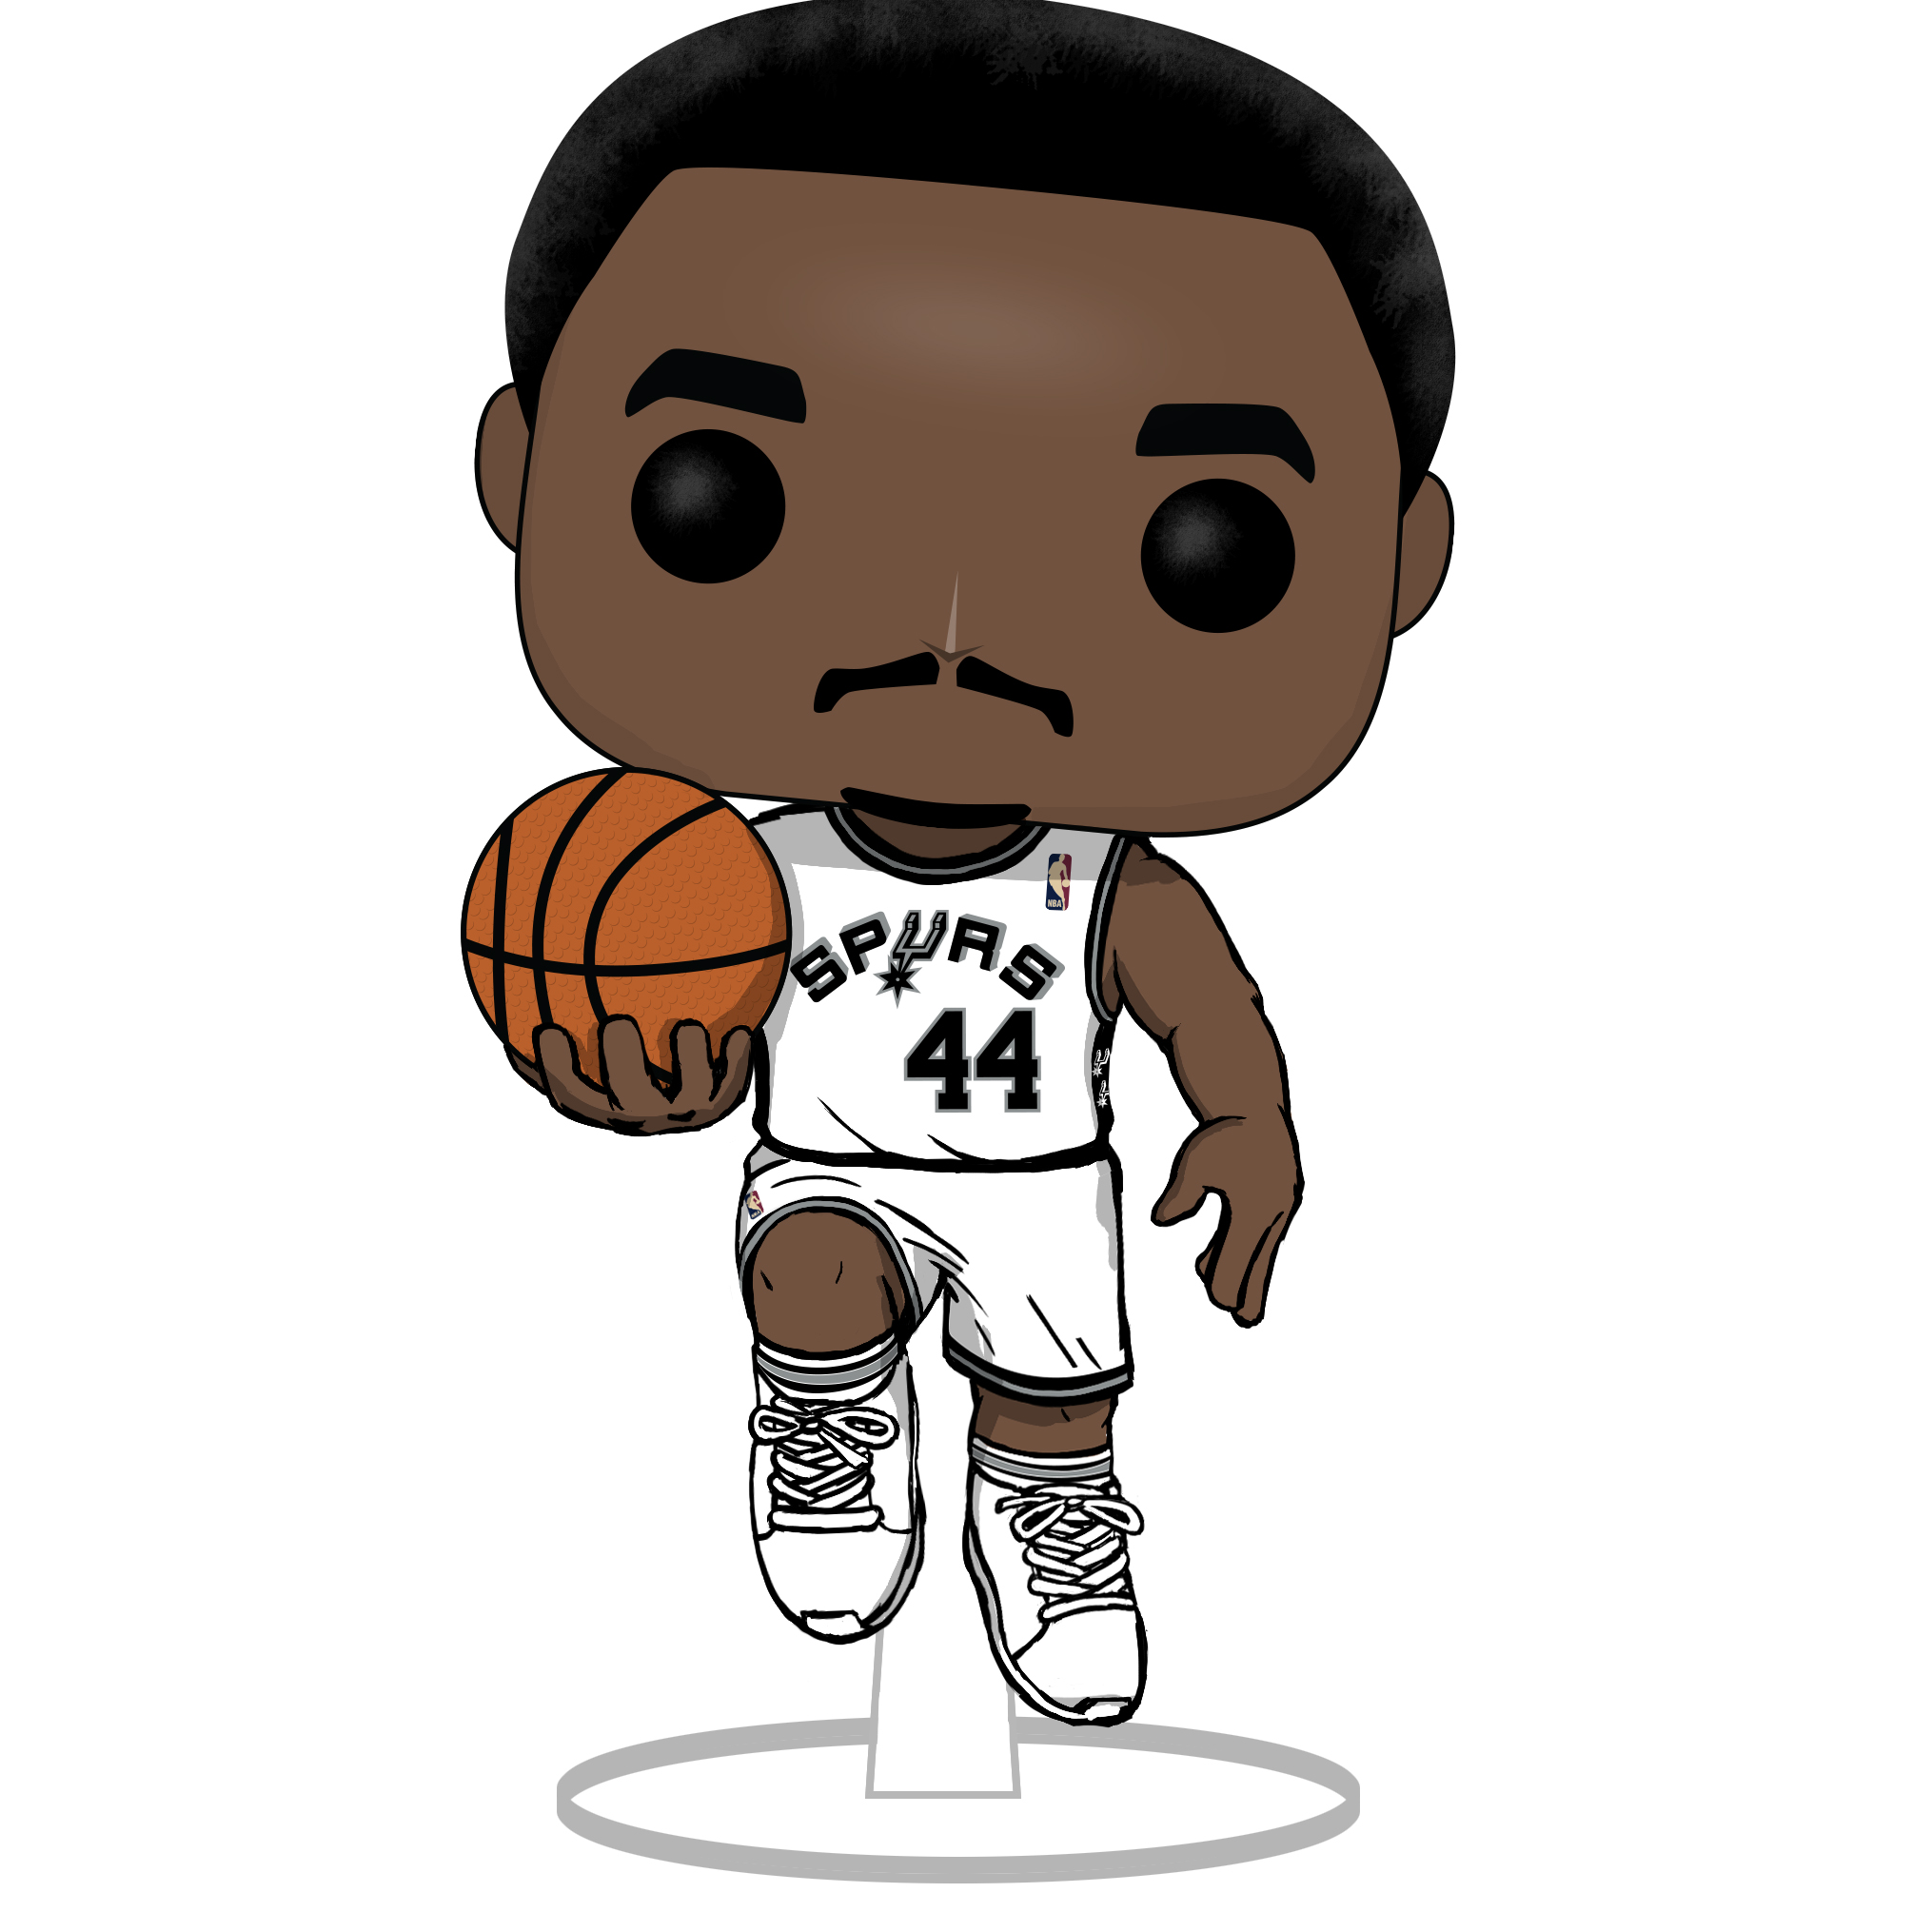 San Antonio Spurs legend George Gervin has his own Funko Pop! Here's how to get it.